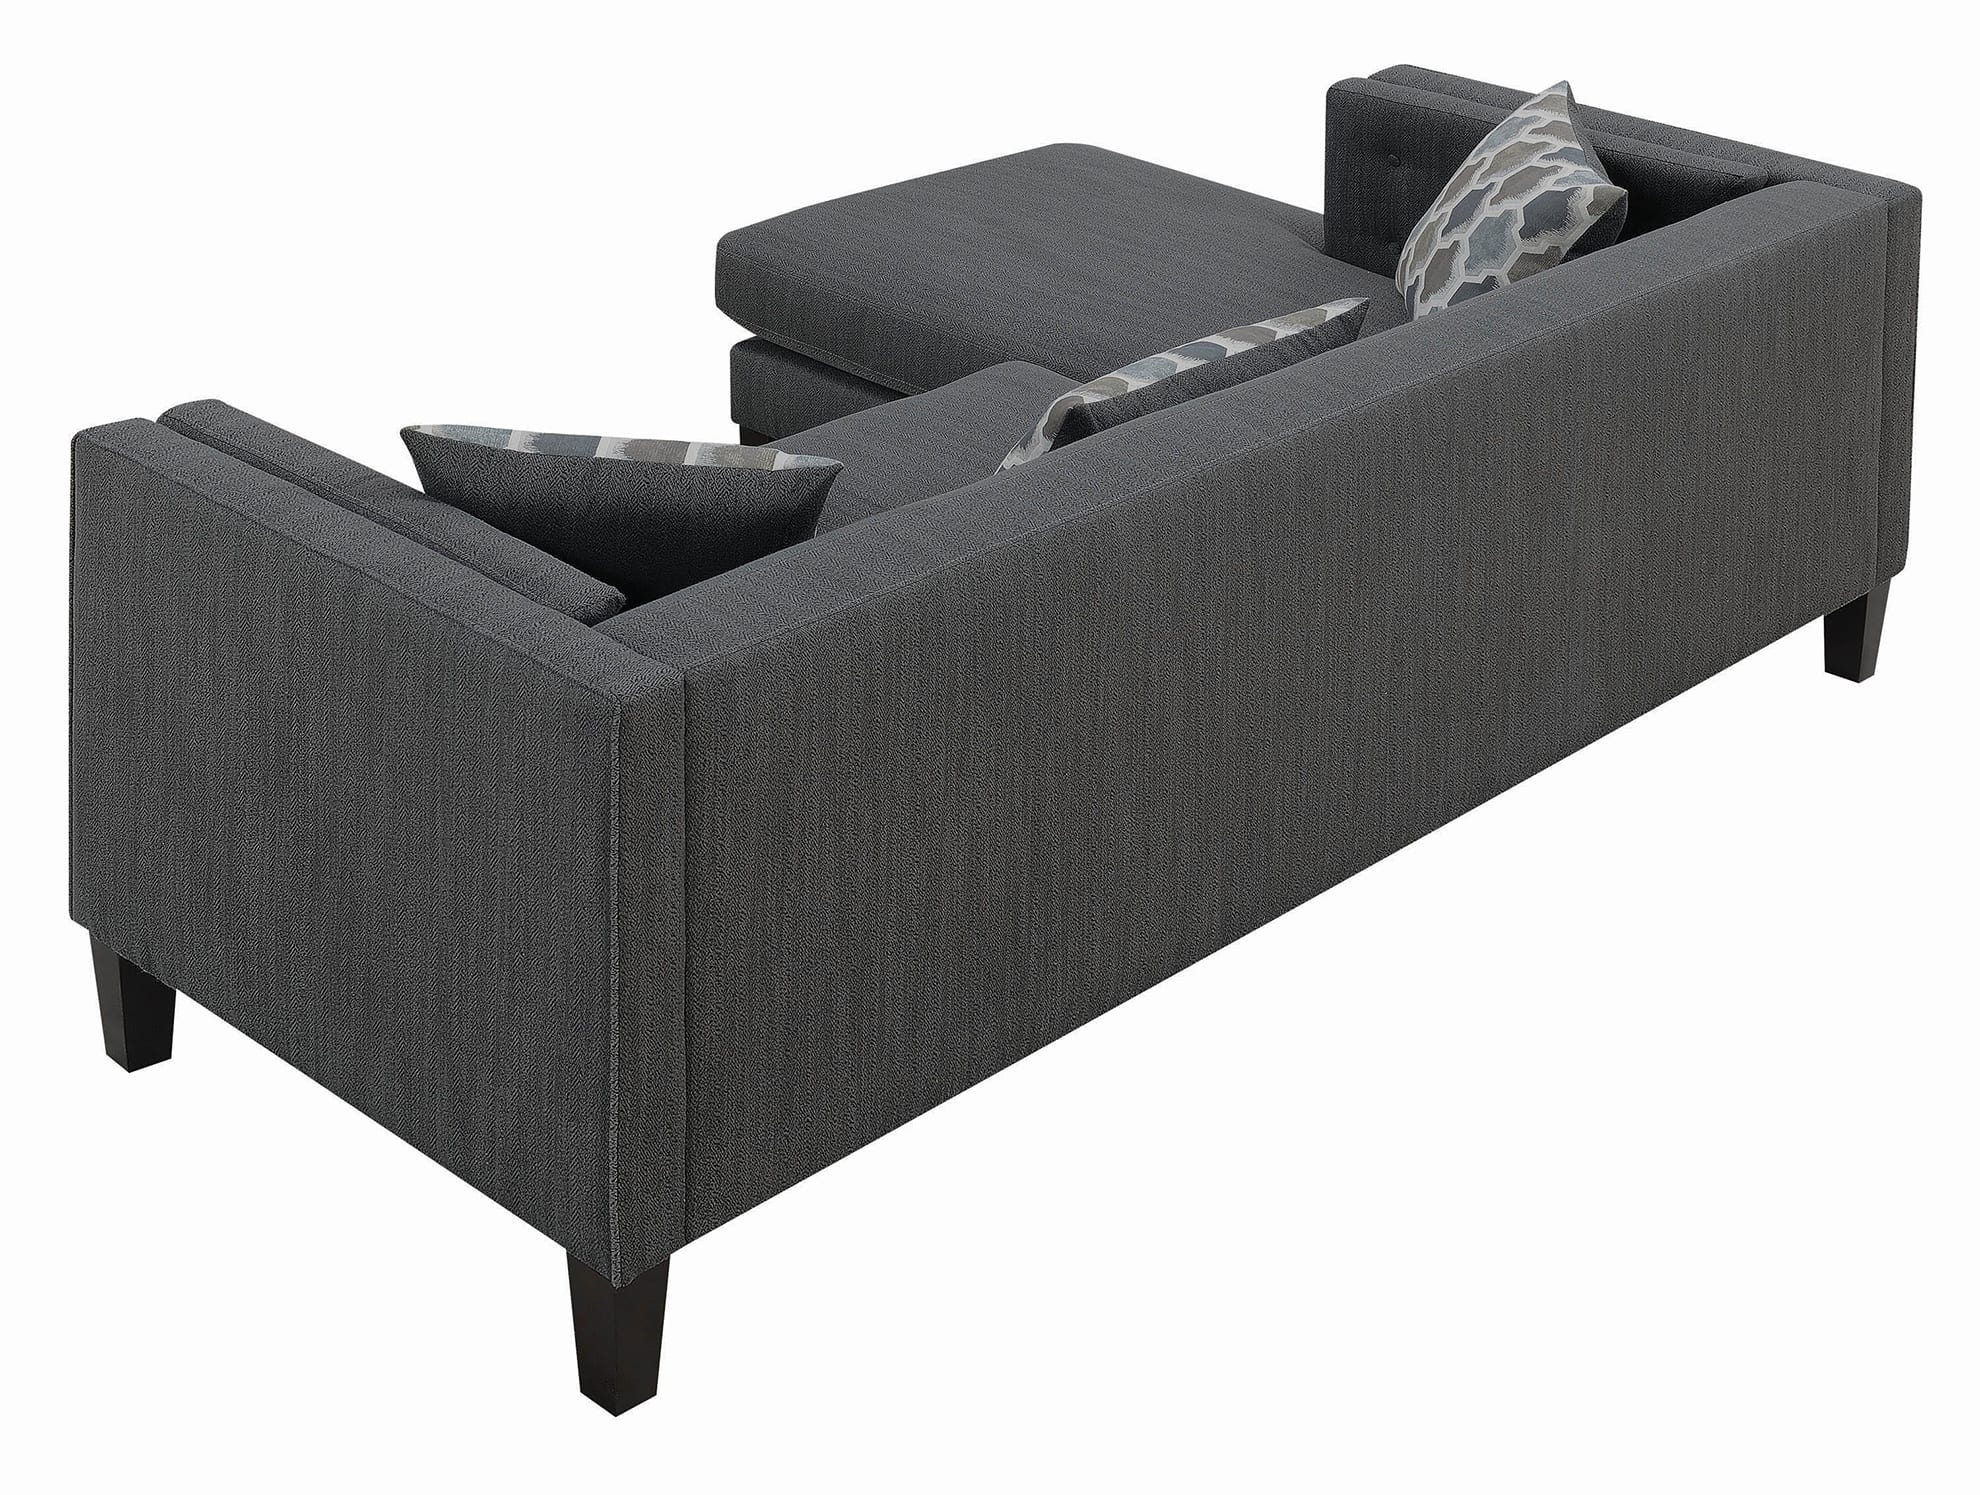 Sawyer Contemporary Dusty Blue Sectional | Quality Pertaining To Brayson Chaise Sectional Sofas Dusty Blue (View 10 of 15)